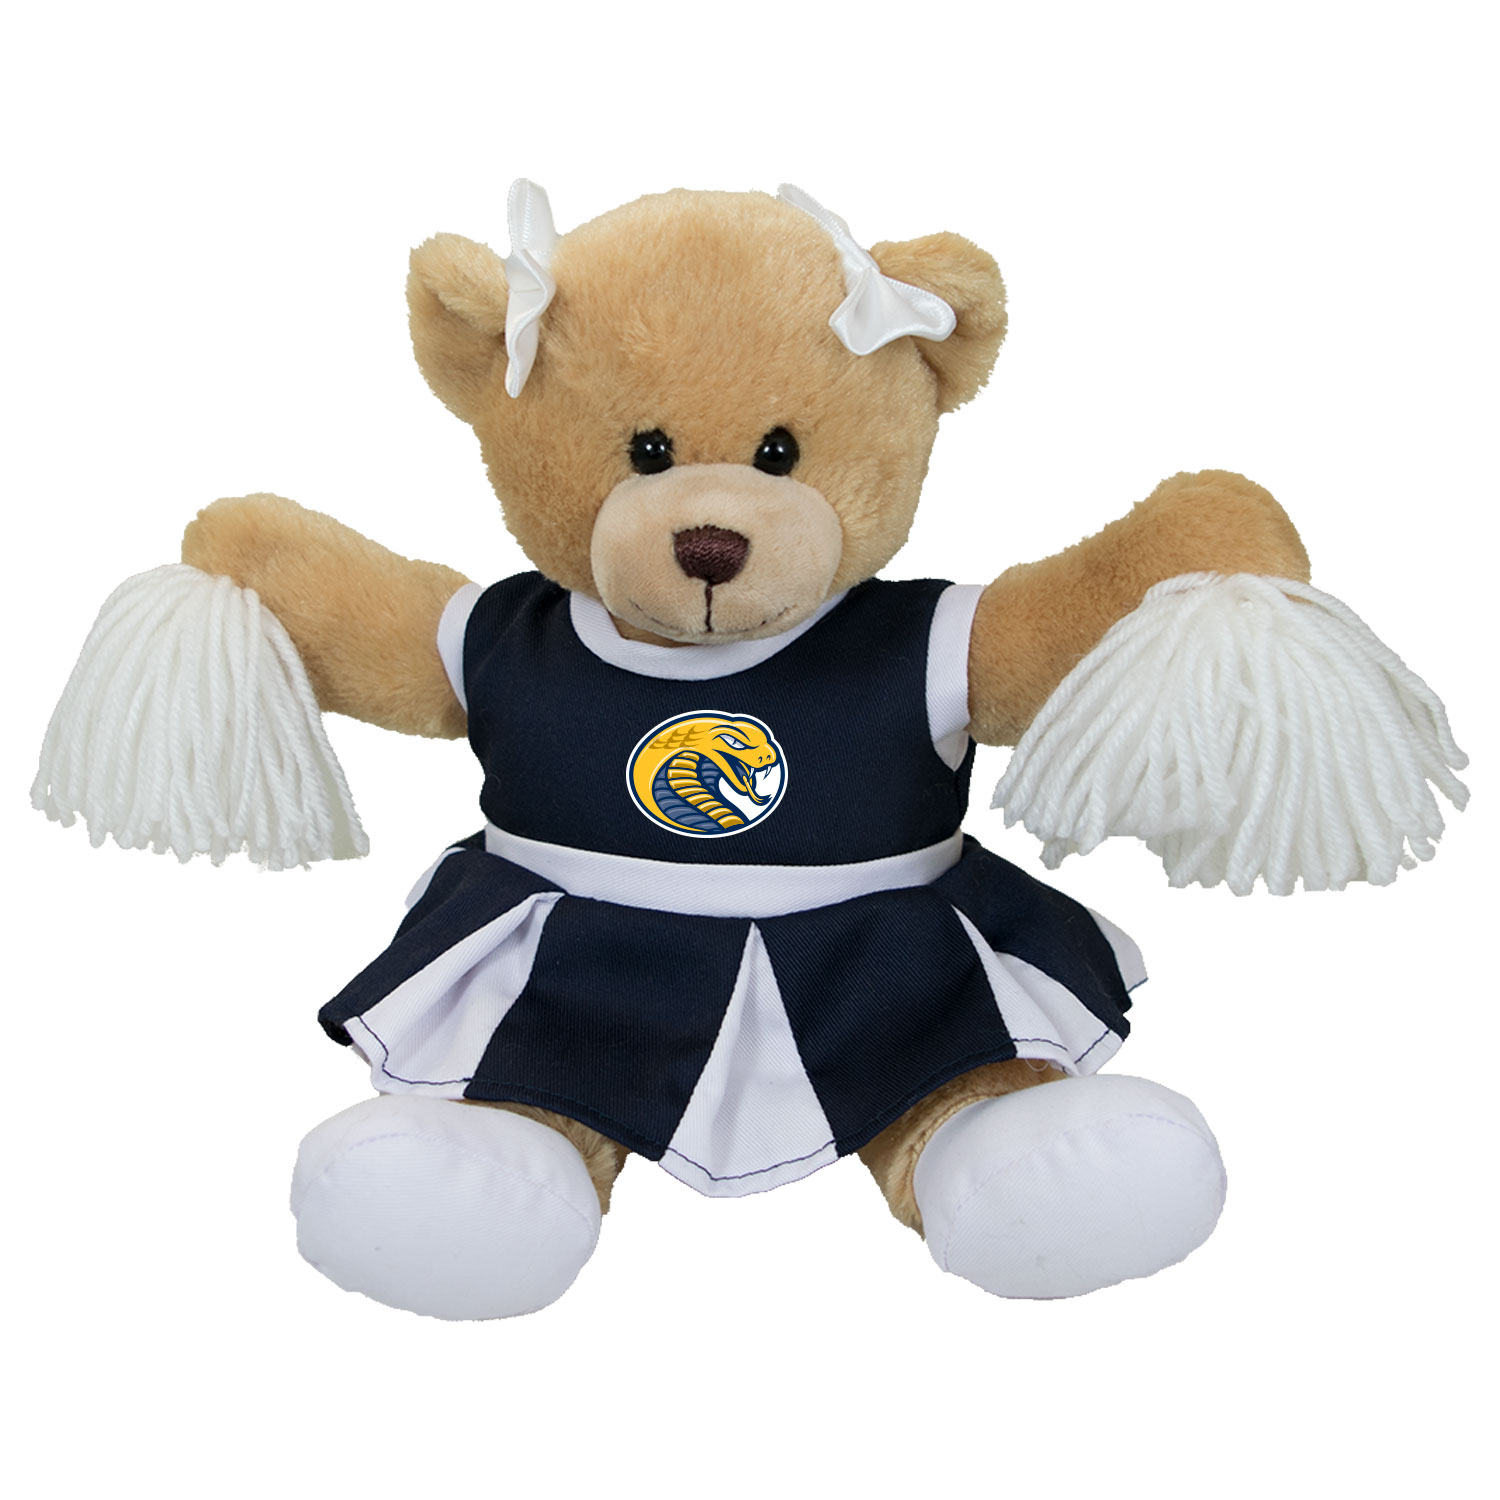 Cover Image For Souvenir Plus CARLY BEAR WITH CHEERLEADER DRESS